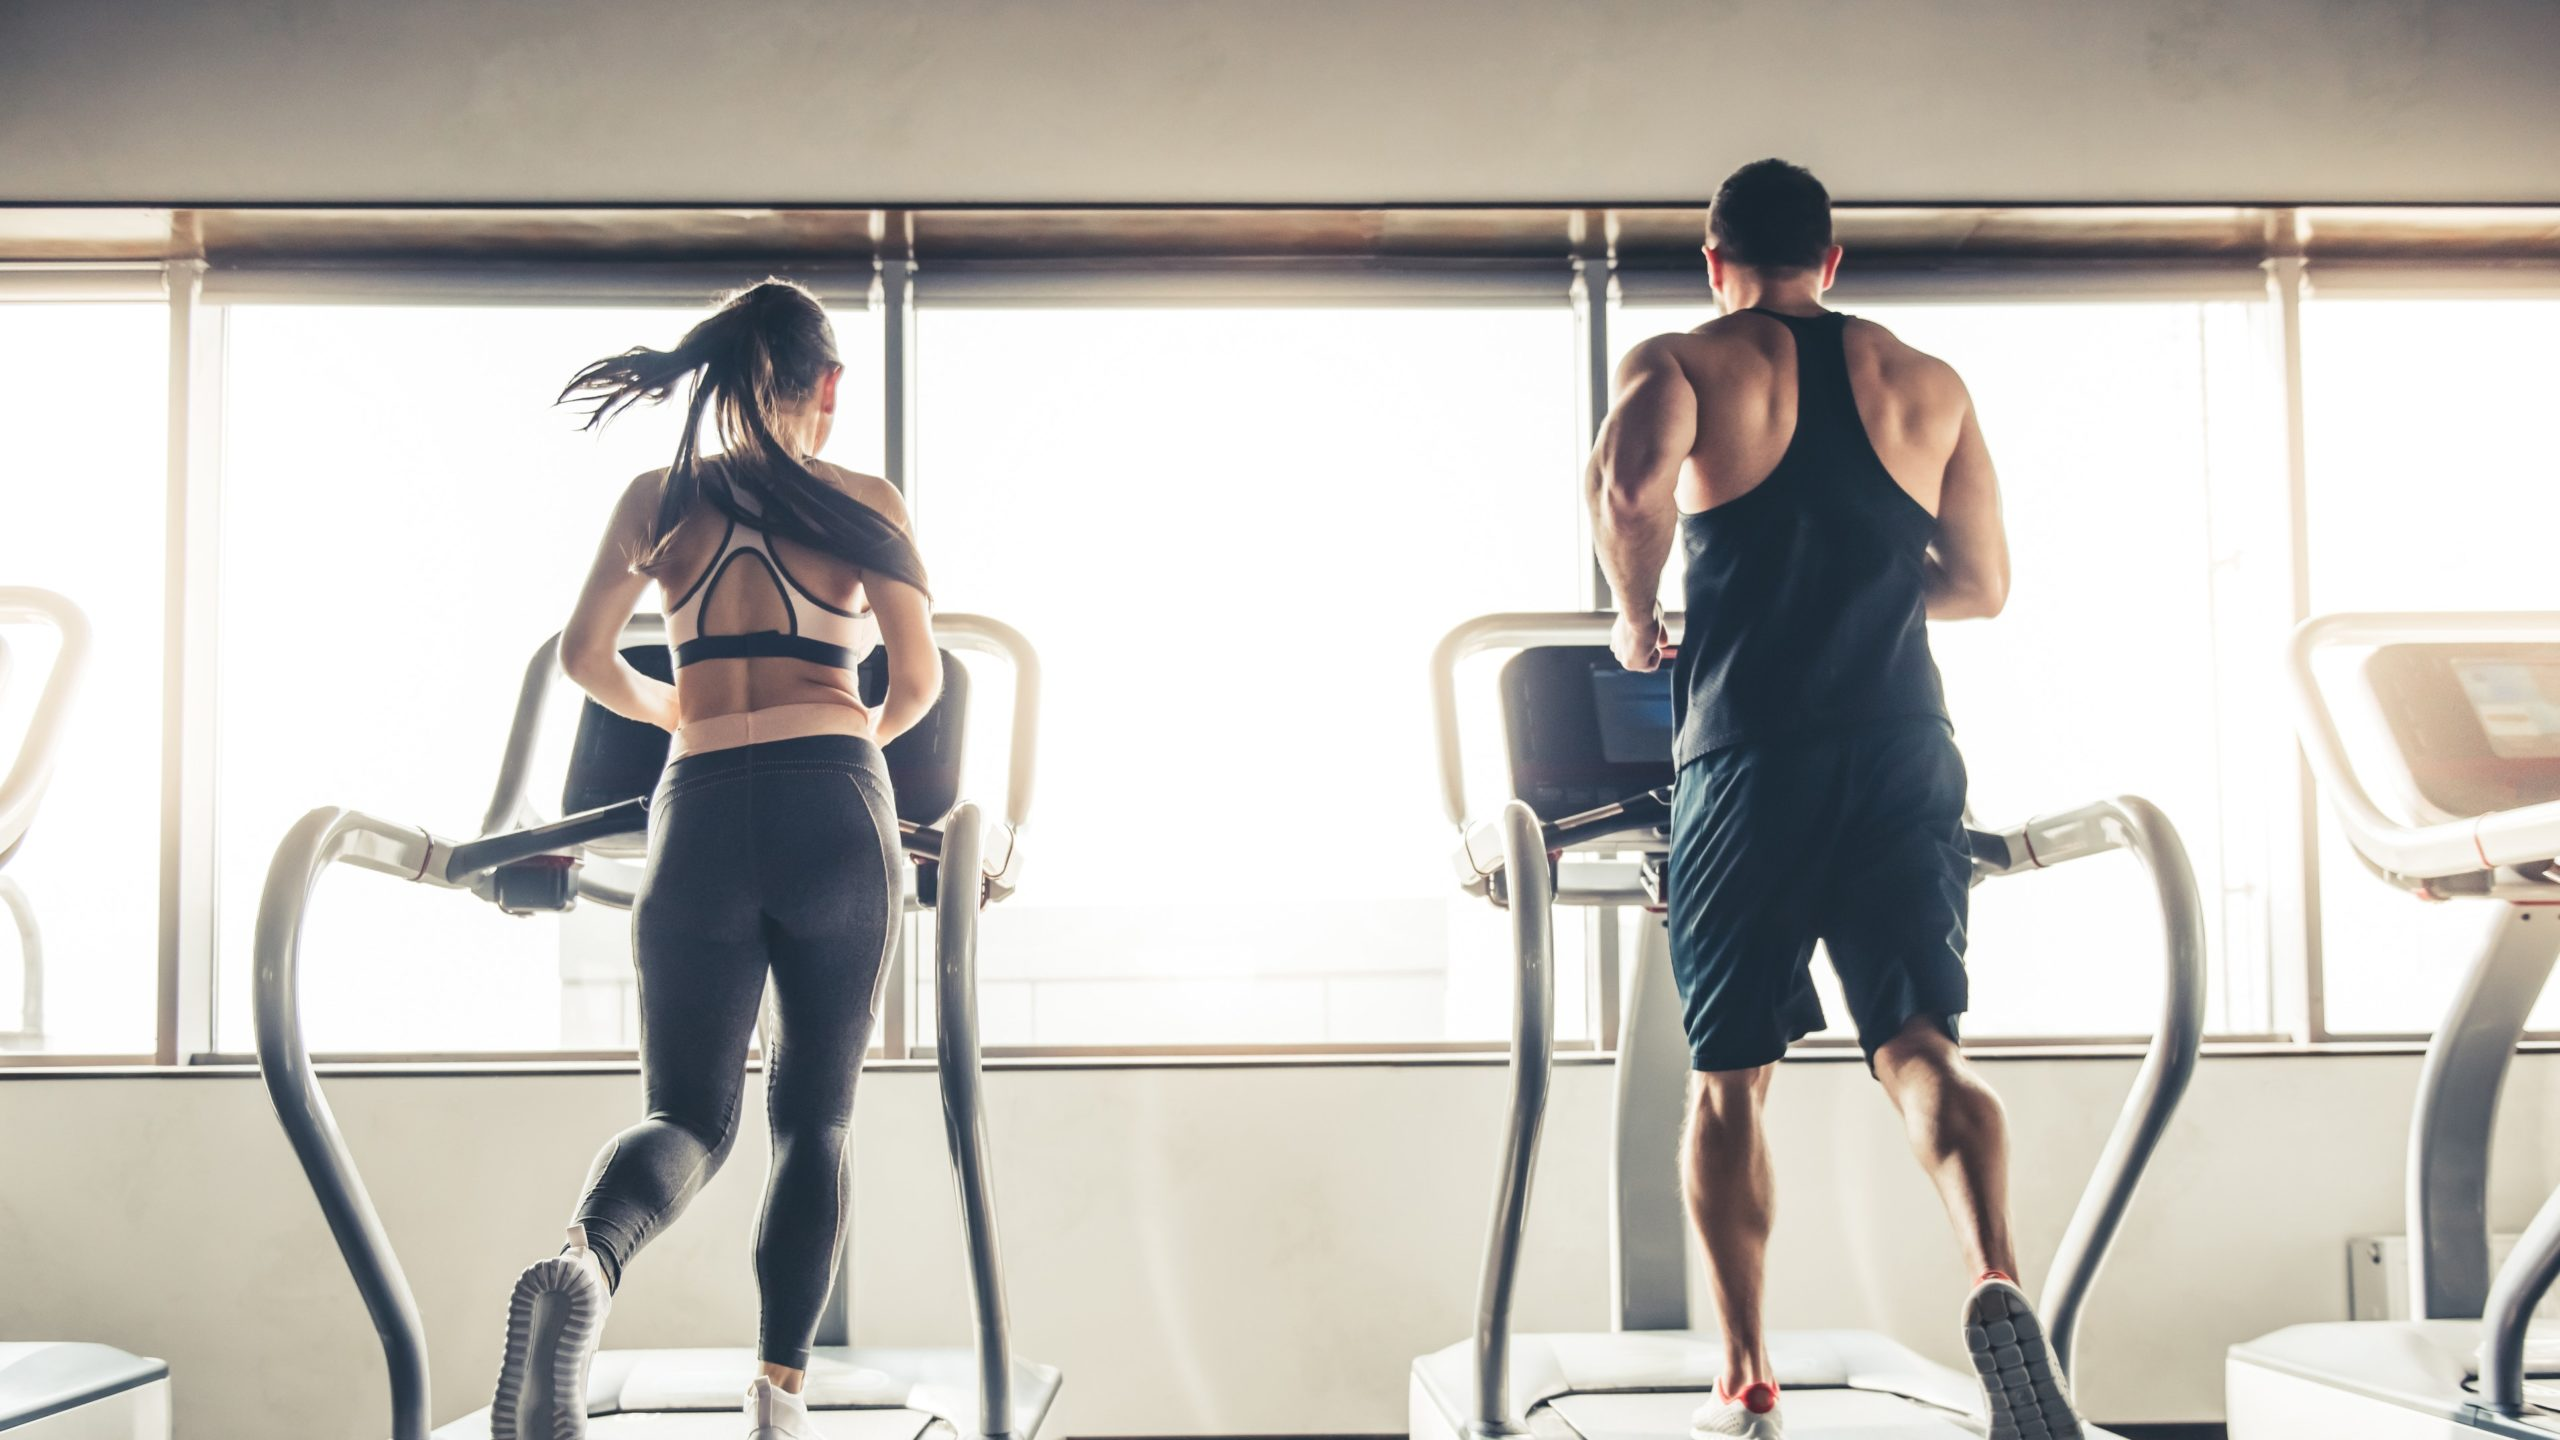 What are the essential tips for working out at home?